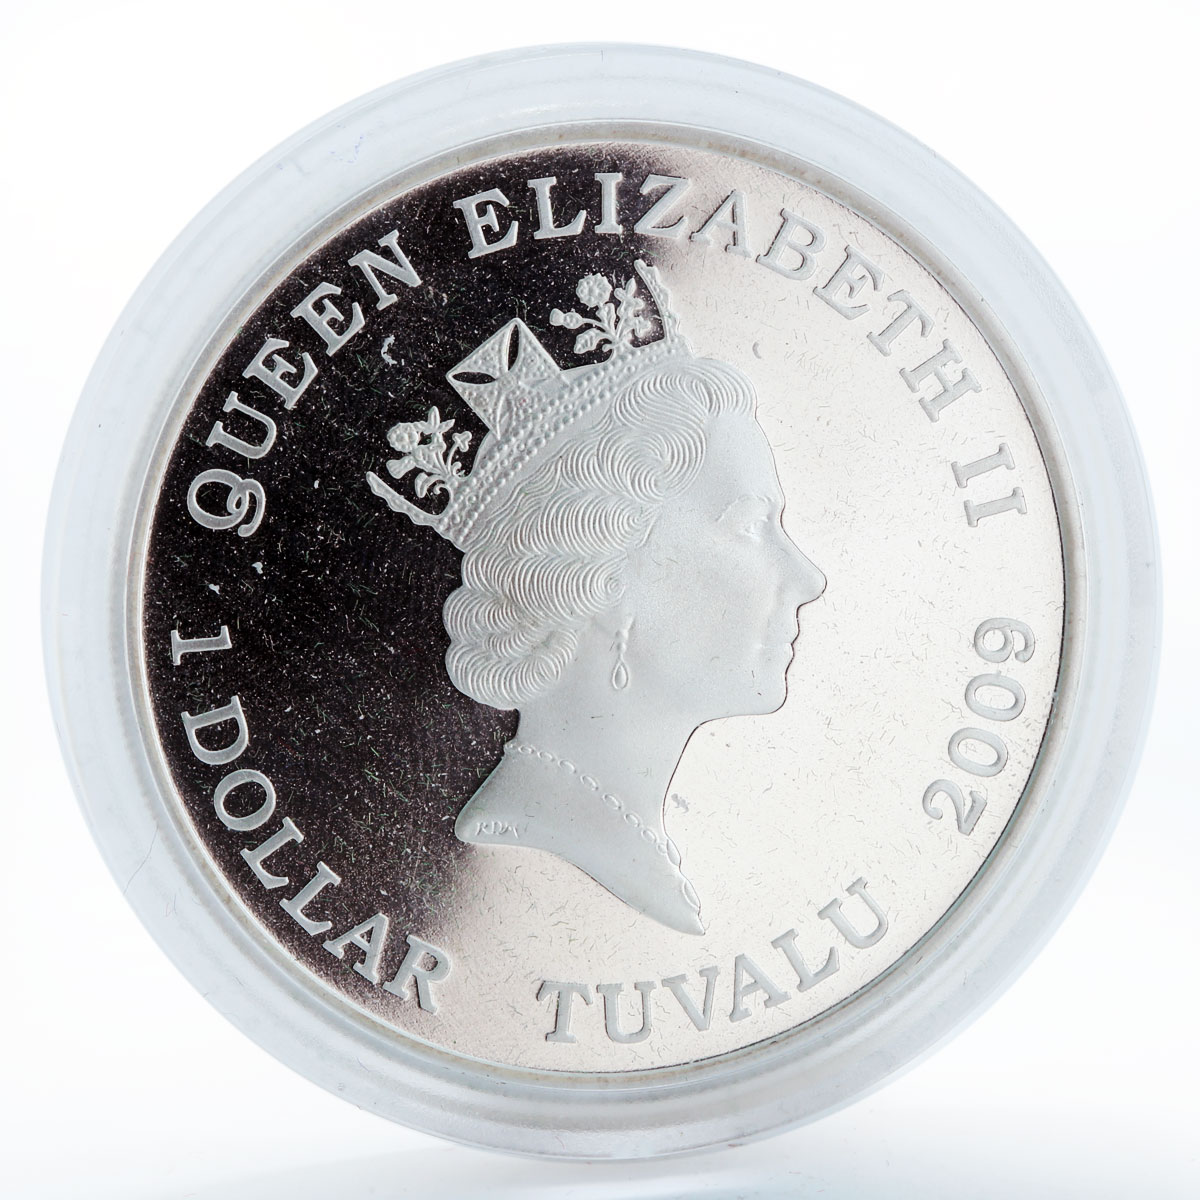 Tuvalu 1 dollar 50th Anniversary of Barbie silver coin 2009